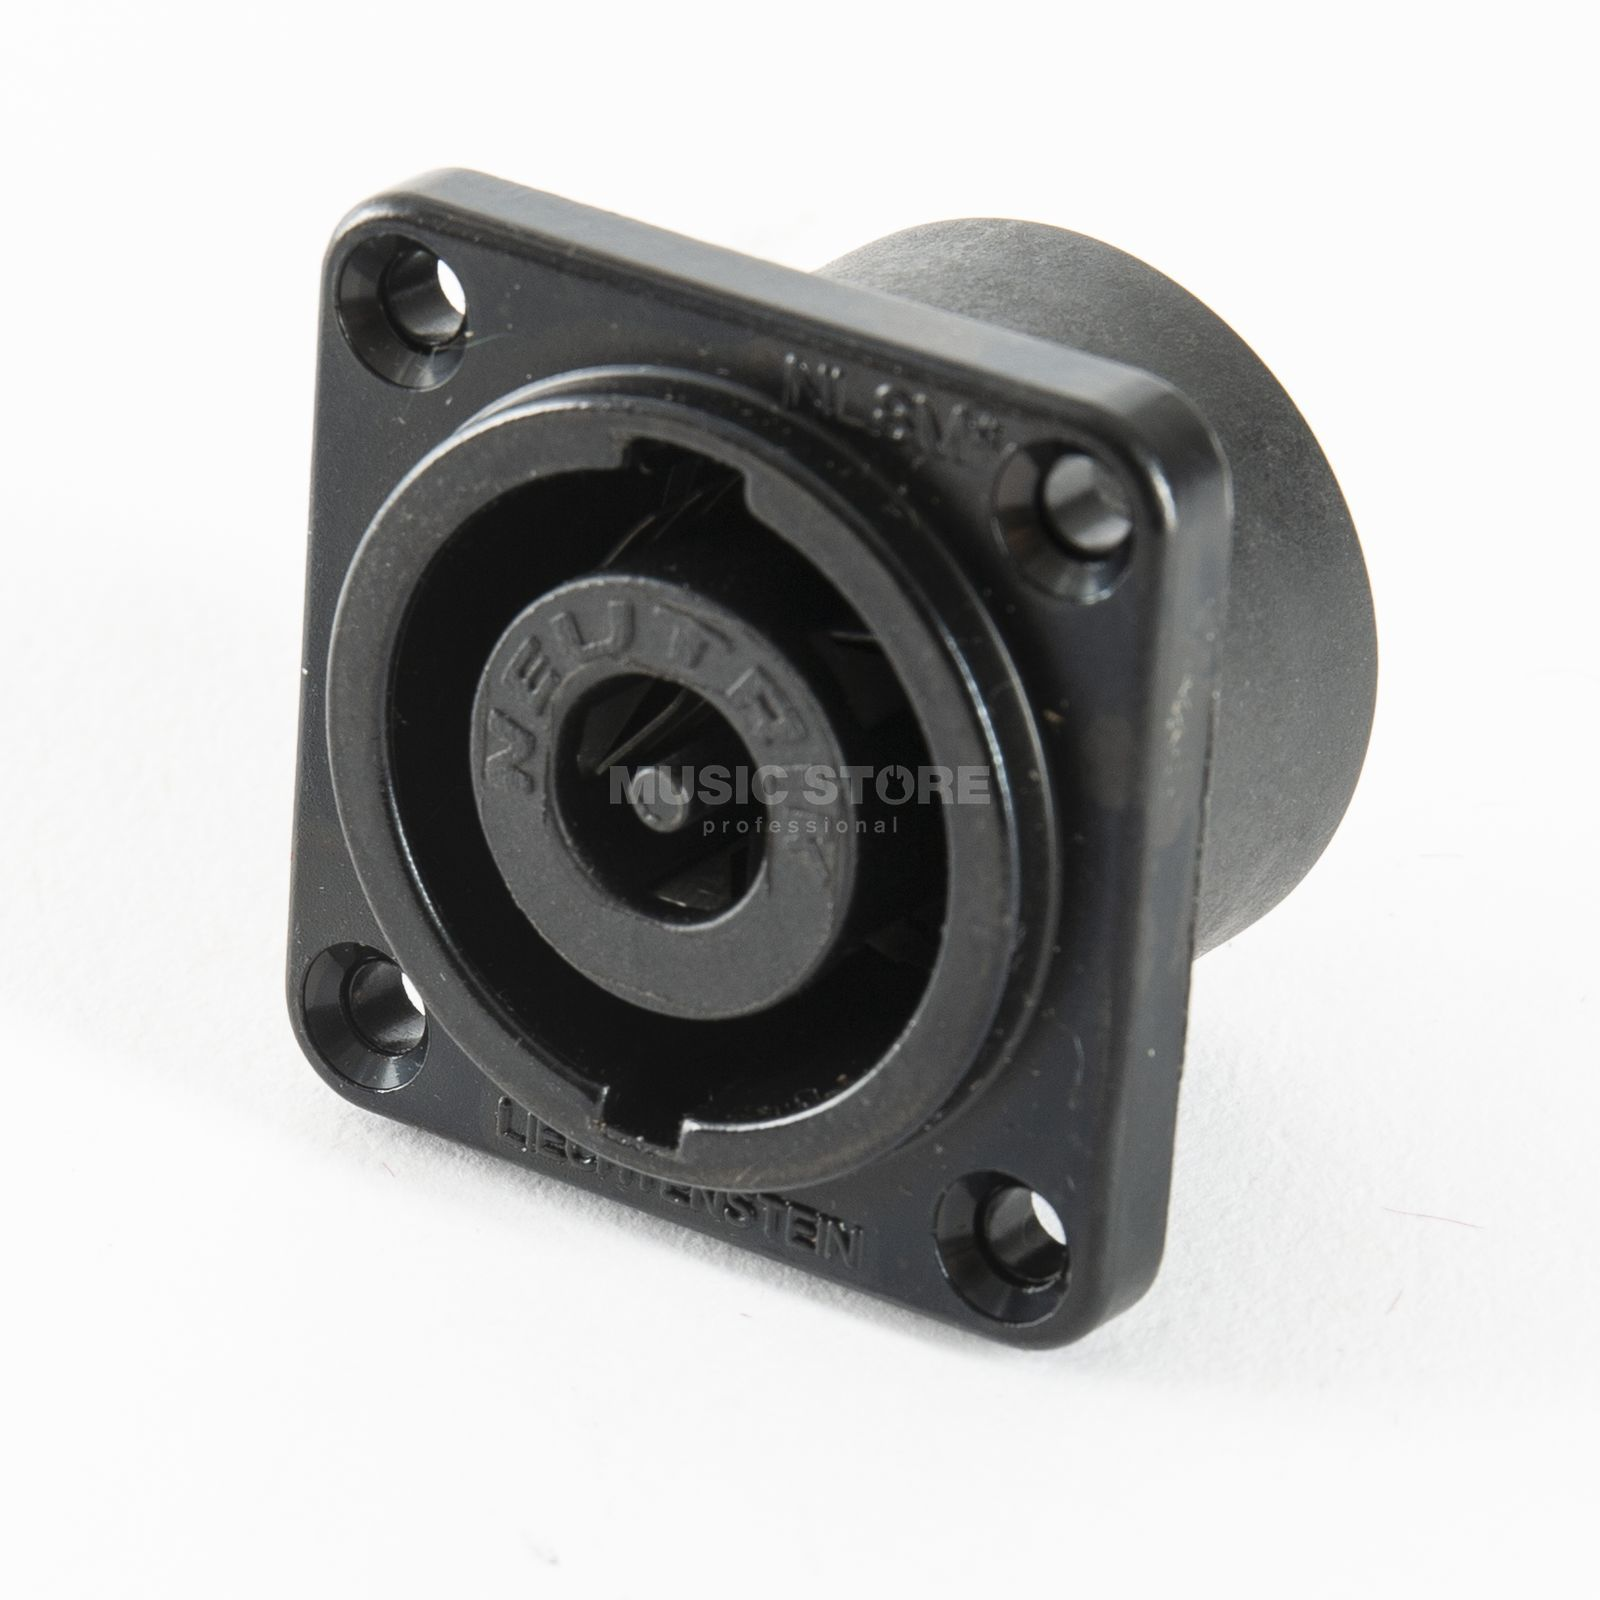 Neutrik NL8MD-V-BAG Speakon Chassis Connector 8-pole G-Size black chrome Product Image